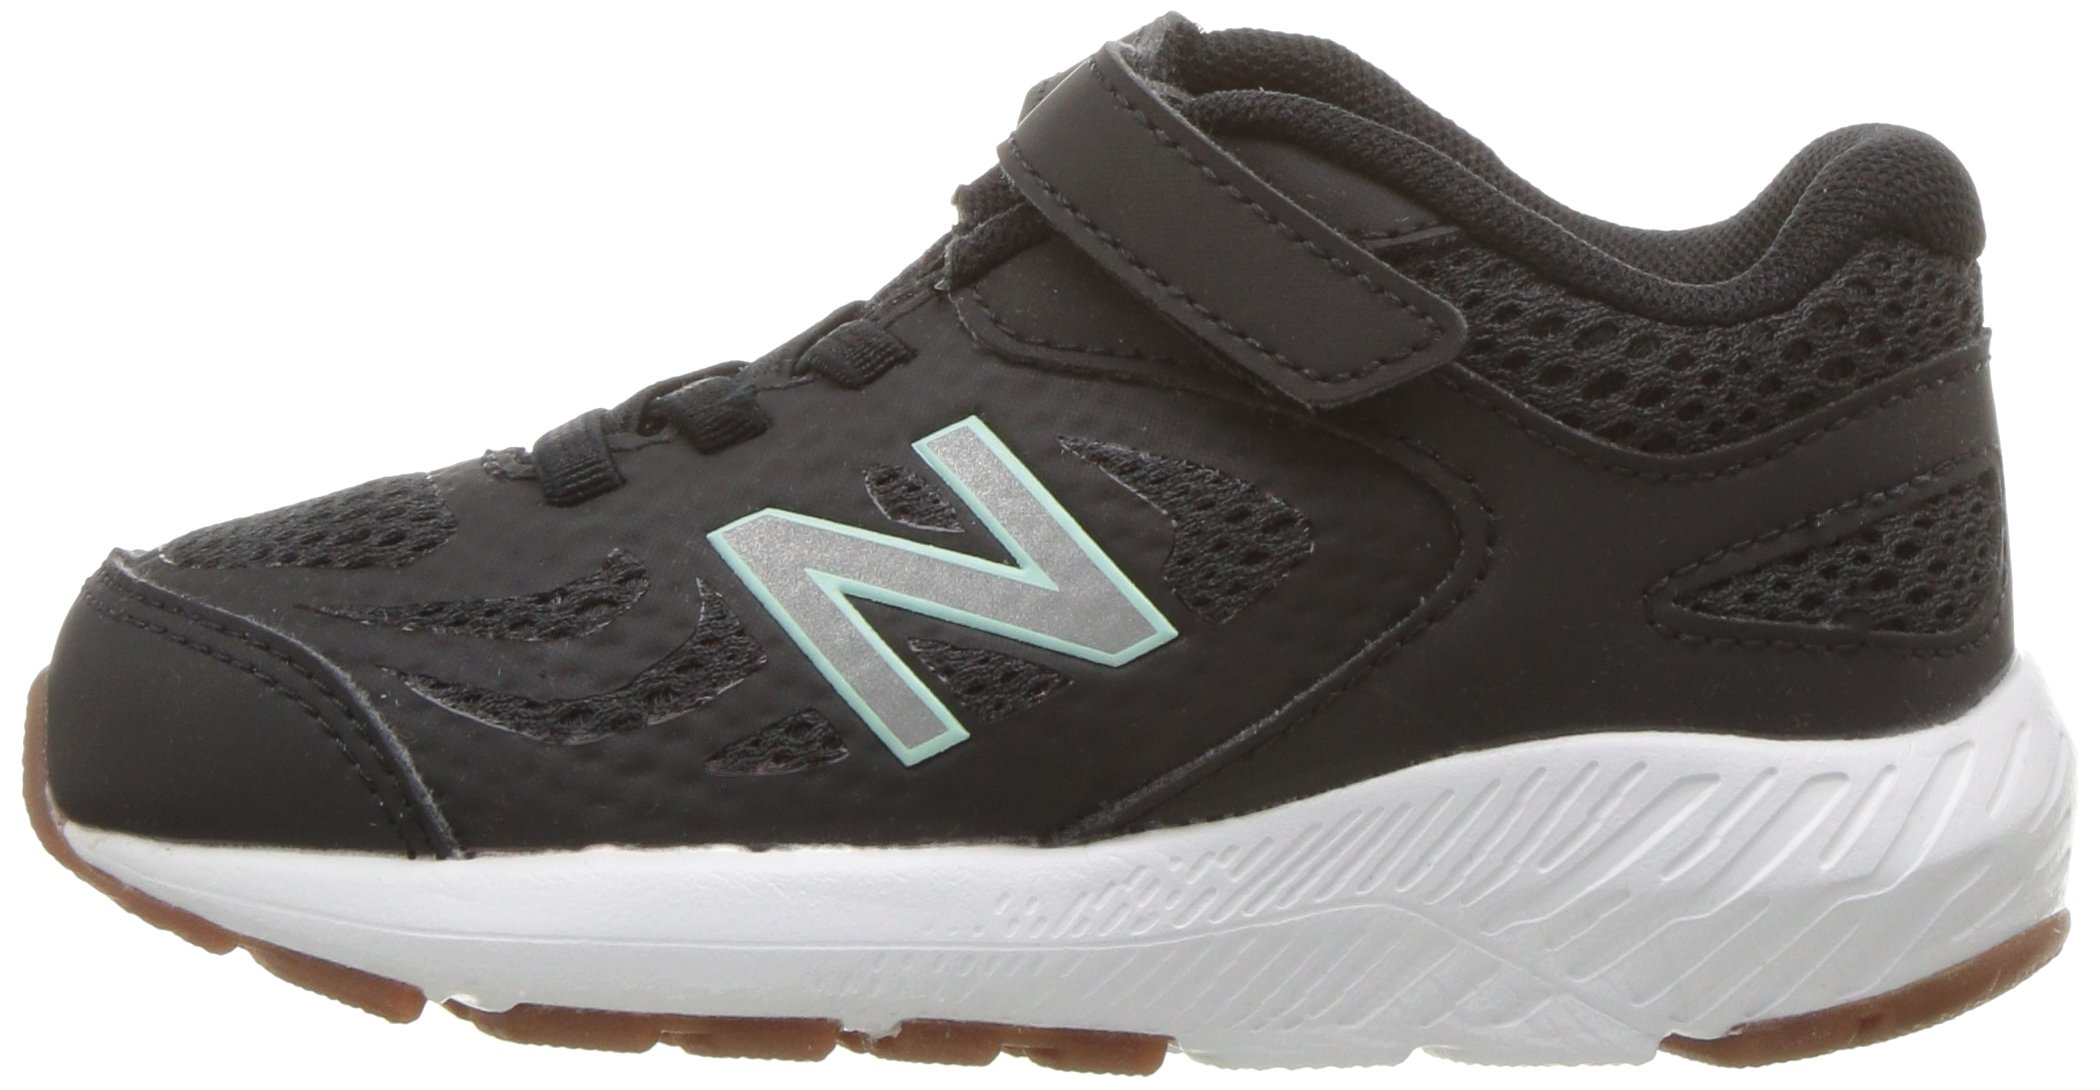 New Balance Girls' 519v1 Hook and Loop Running Shoe Black/Seafoam 2 M US Infant by New Balance (Image #5)